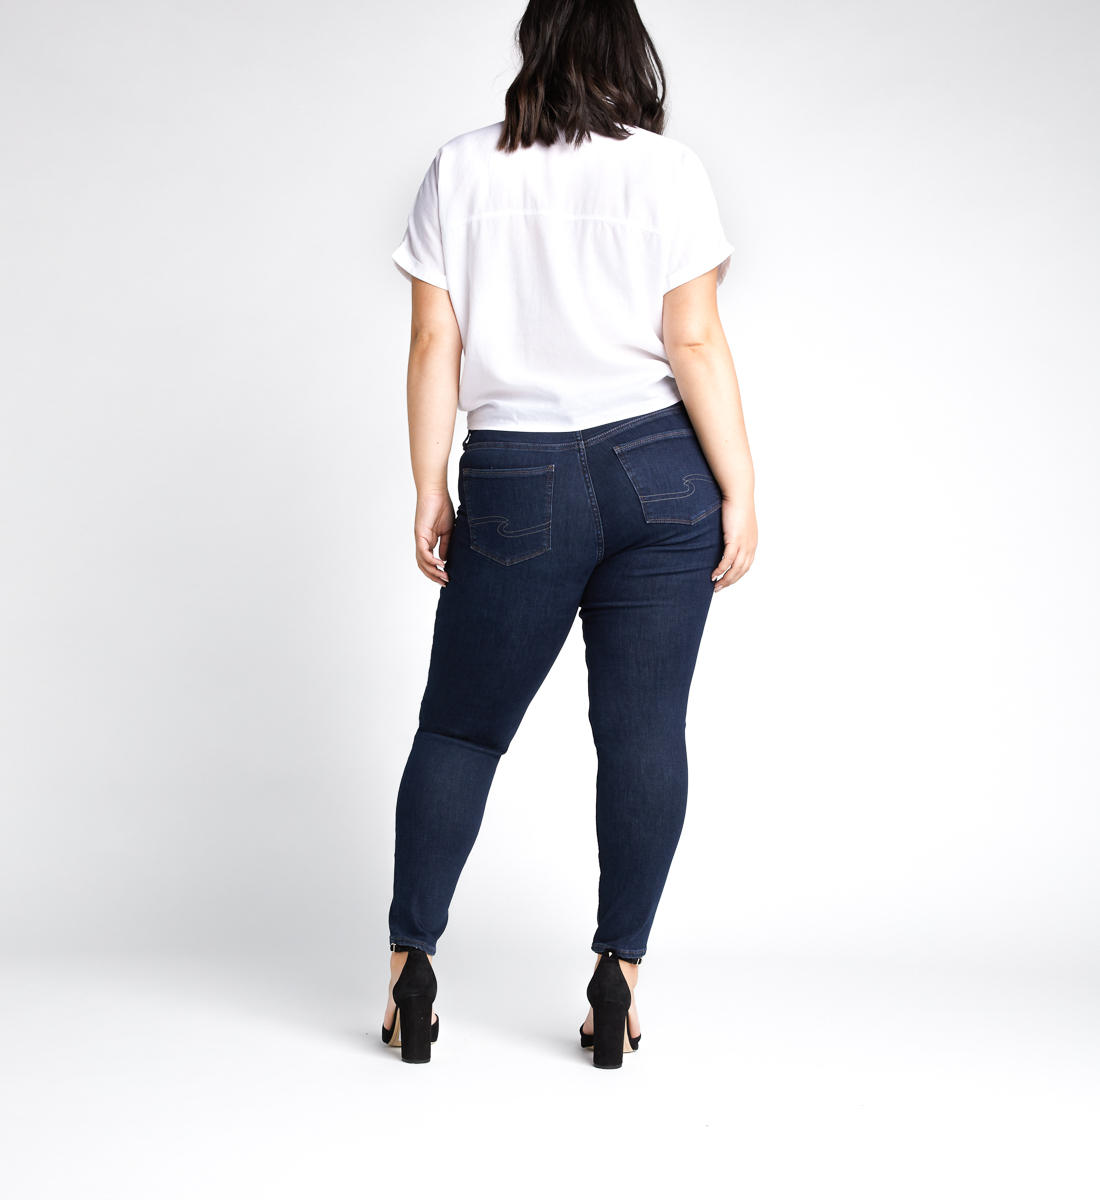 Avery High Rise Skinny Leg Jeans Plus Size,Indigo Back